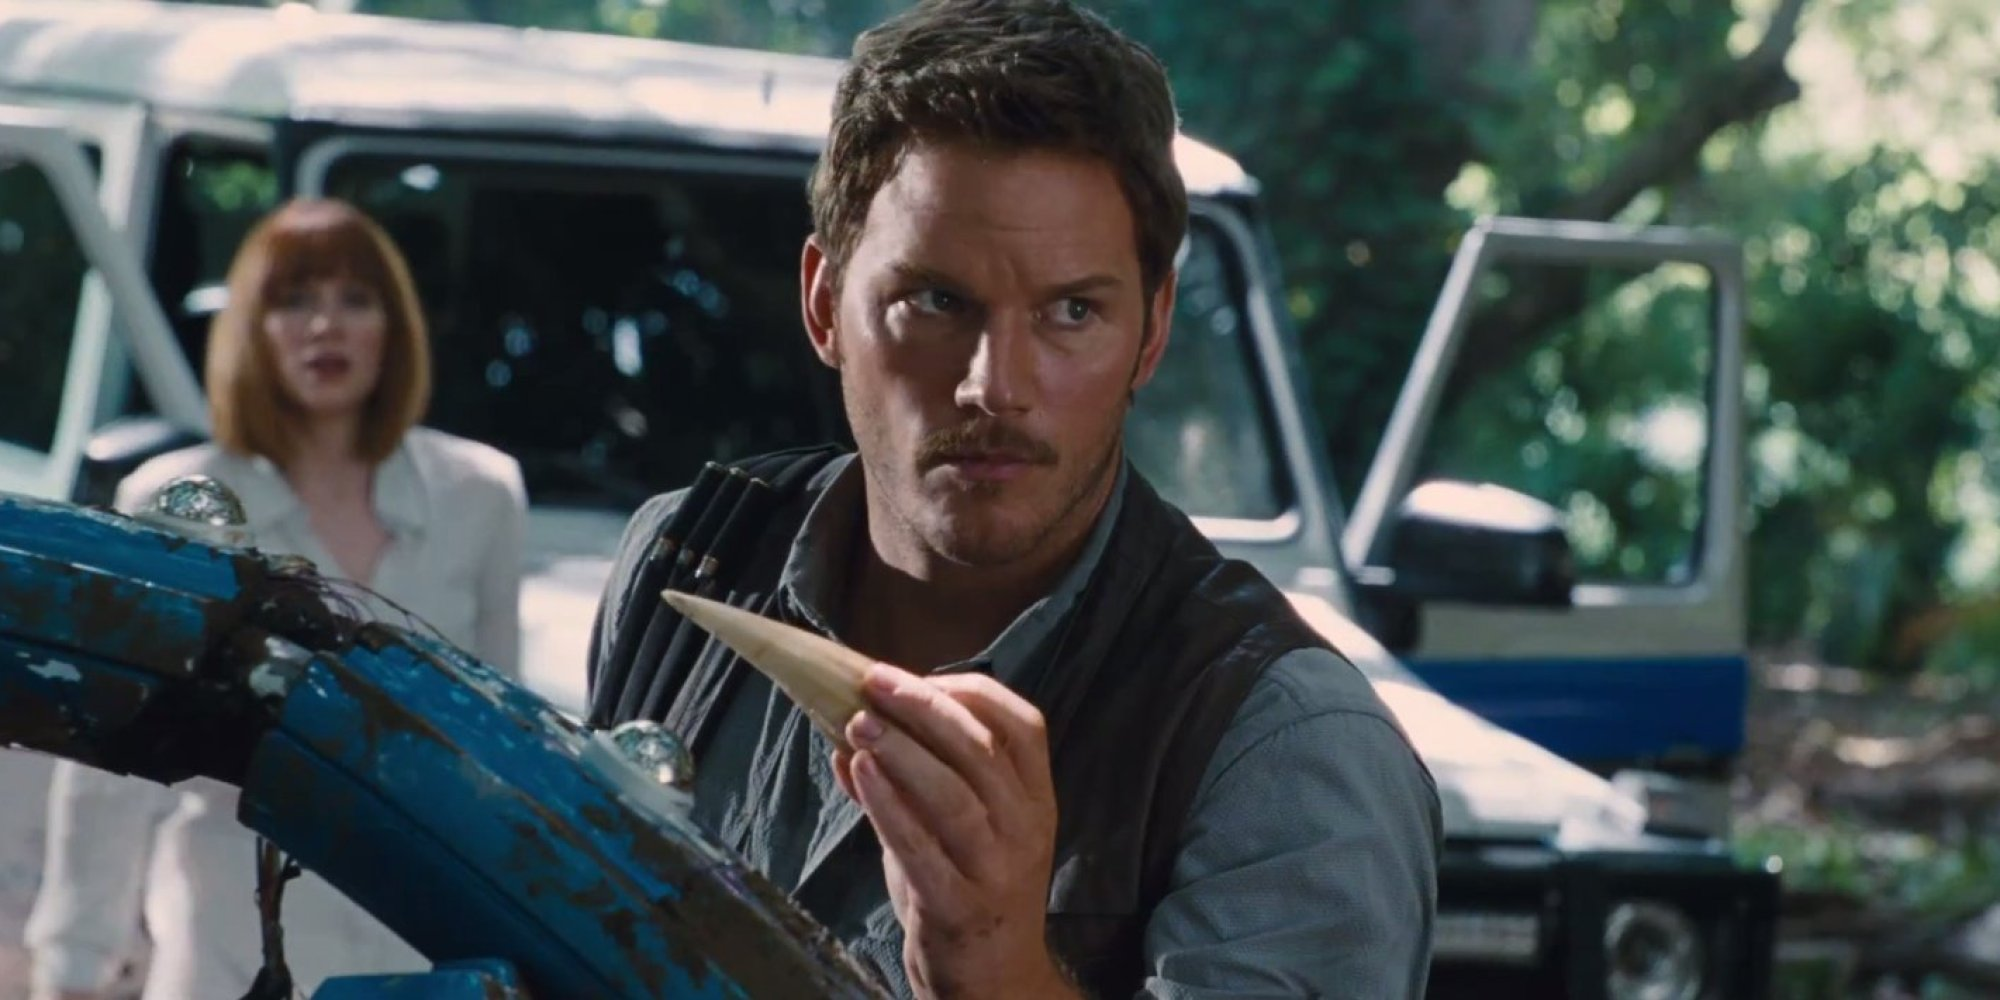 Jurassic World: The 'Jurassic World' Trailer Has Been Cooked Up In That